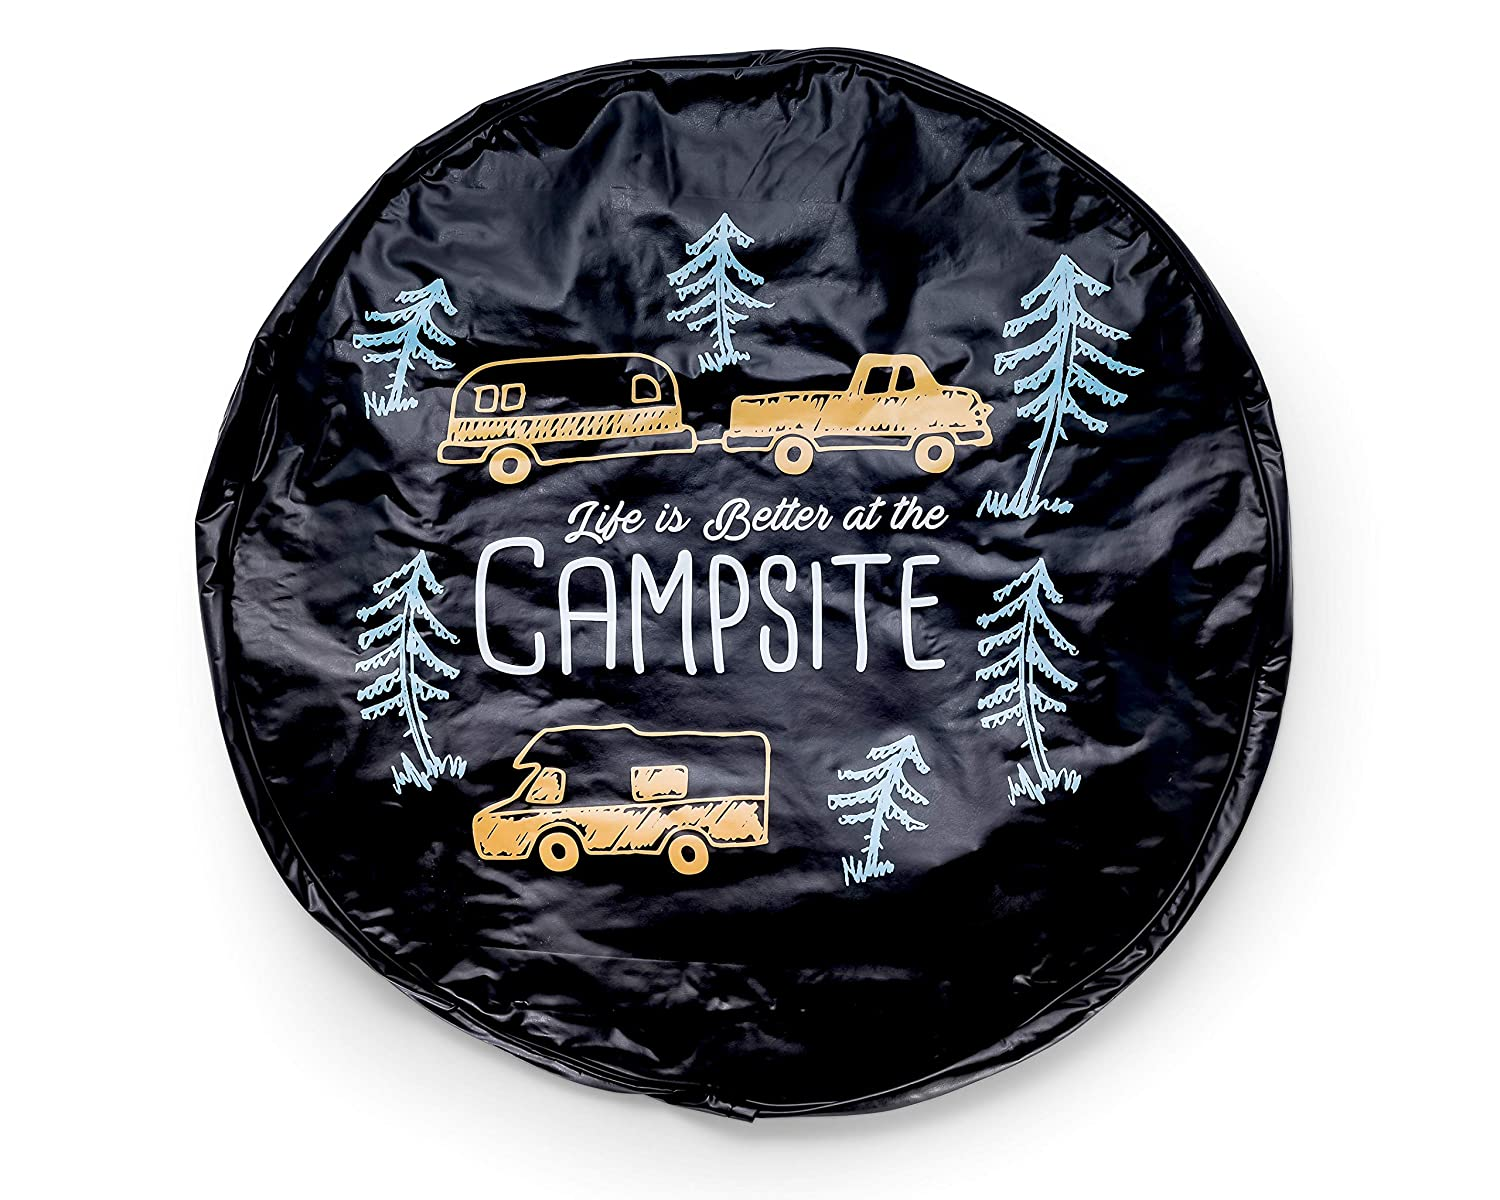 and Sun Away from Your Spare Tire Rain Camco Life is Better at Campsite 27 Vinyl Cover with Elastic Hem-Durable Design Keeps Dirt 53292